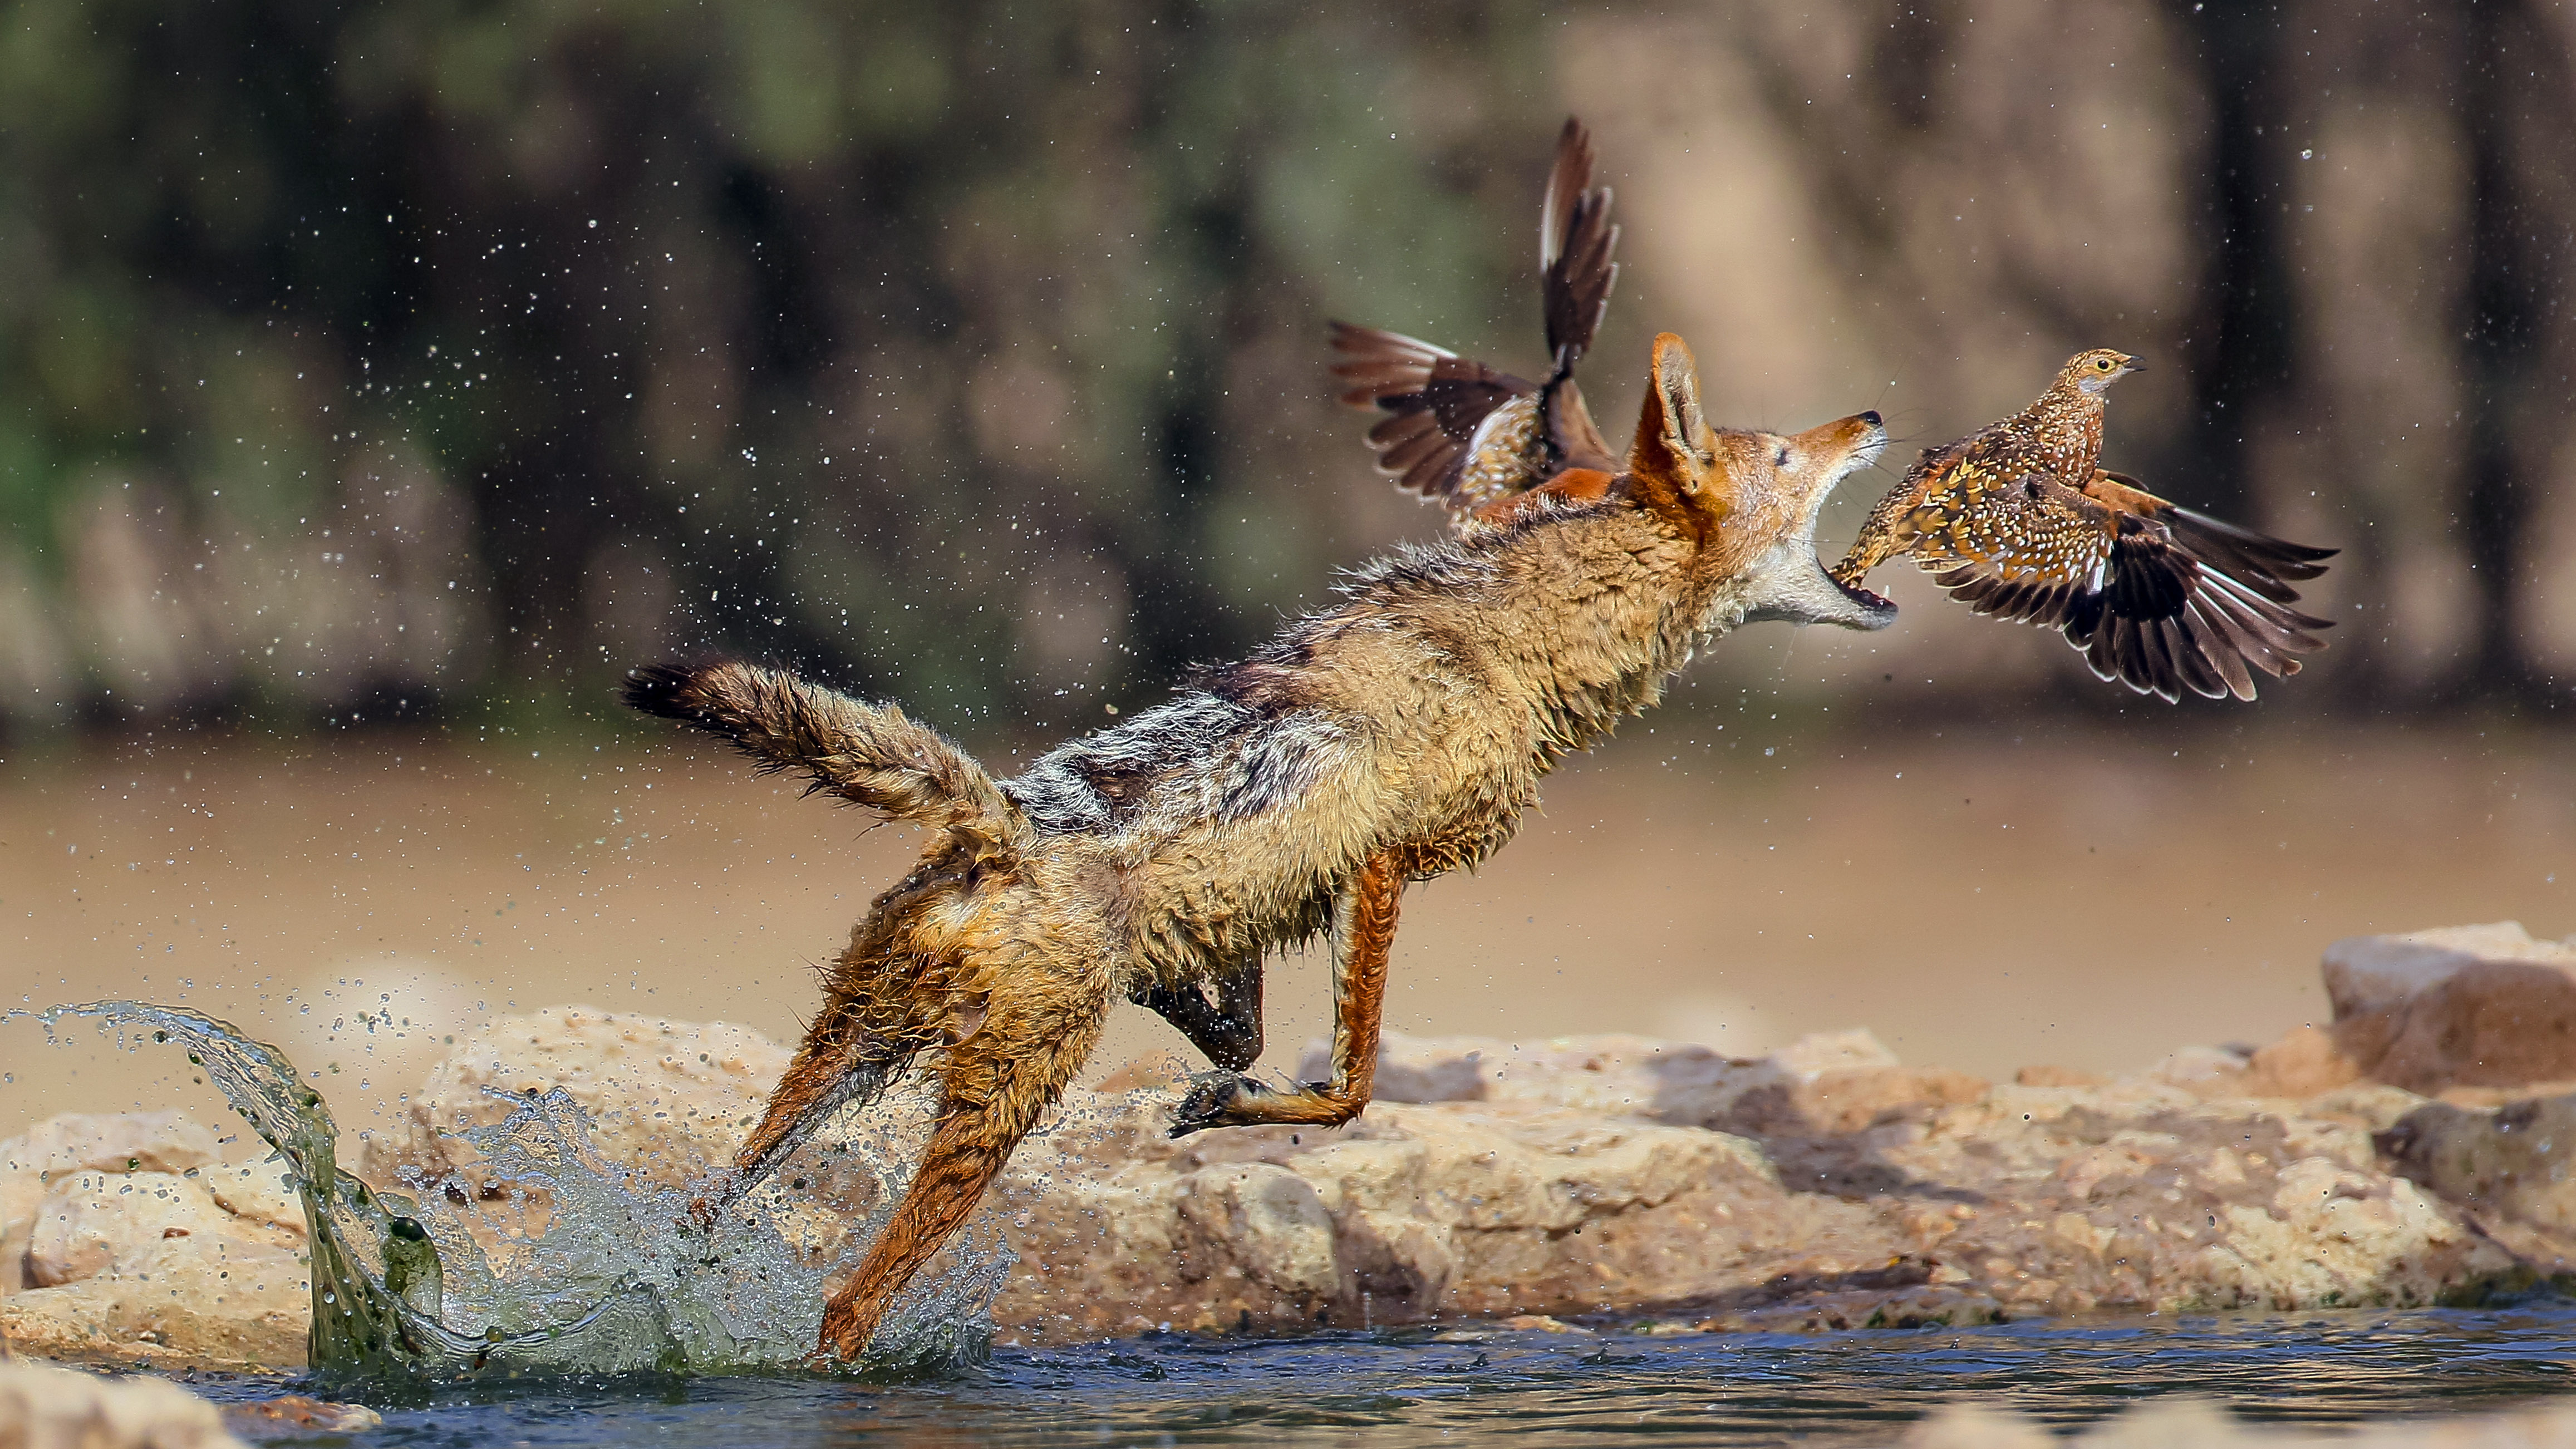 A hungry jackal wanted to attack an ostrich, but changed his mind 54